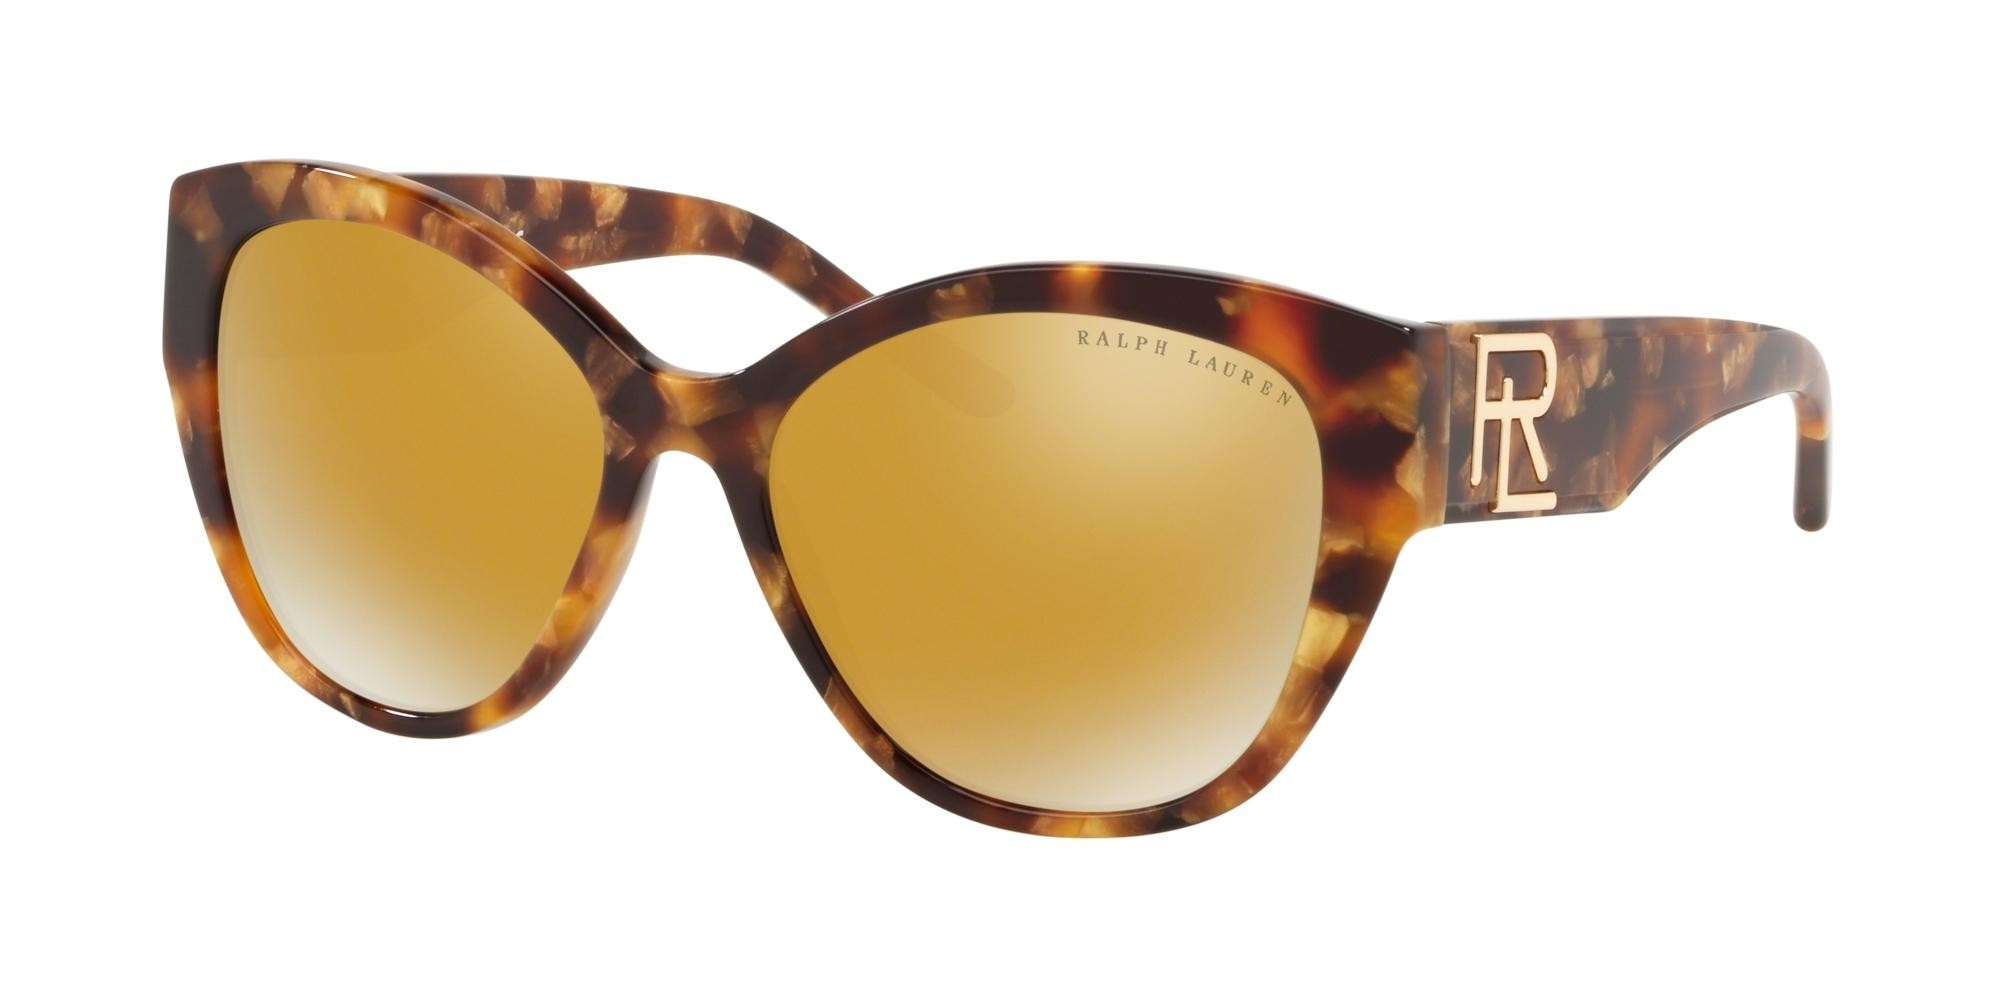 Ralph Lauren sunglasses RL 8168